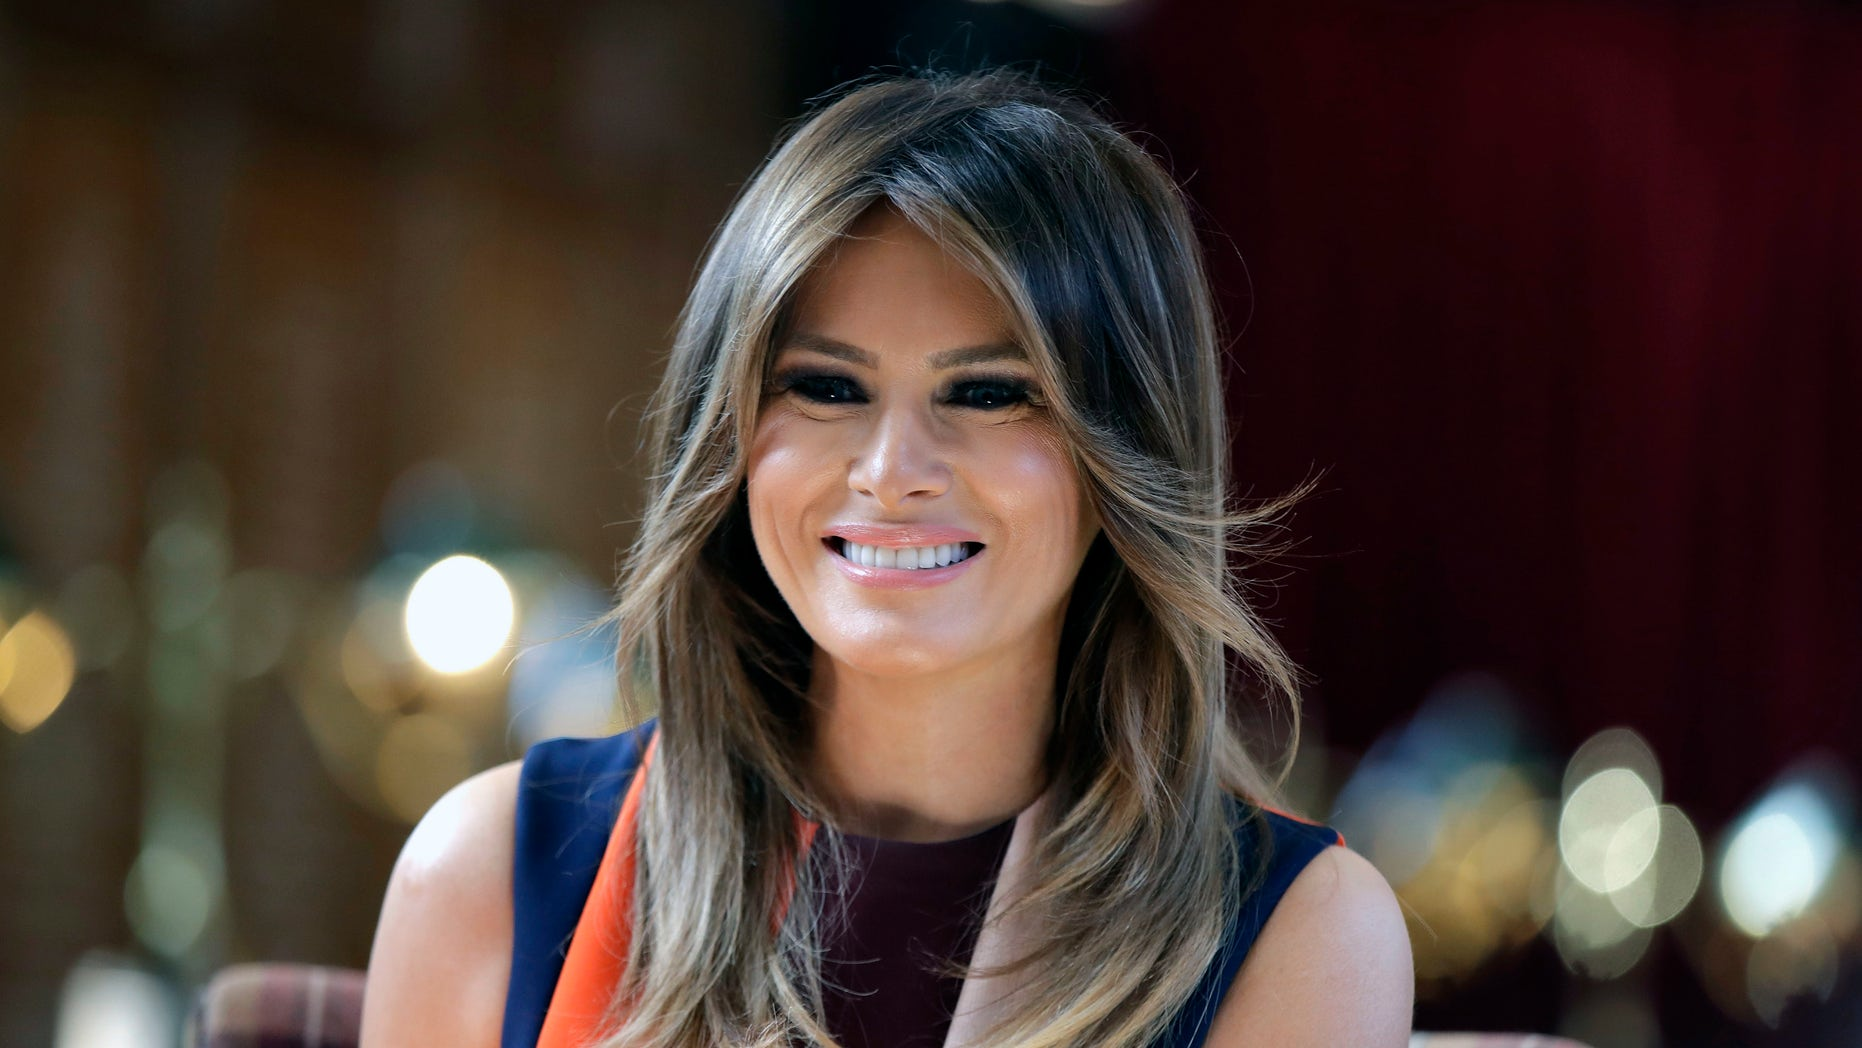 Melania Trump's plane lands safely after 'mechanical' issue